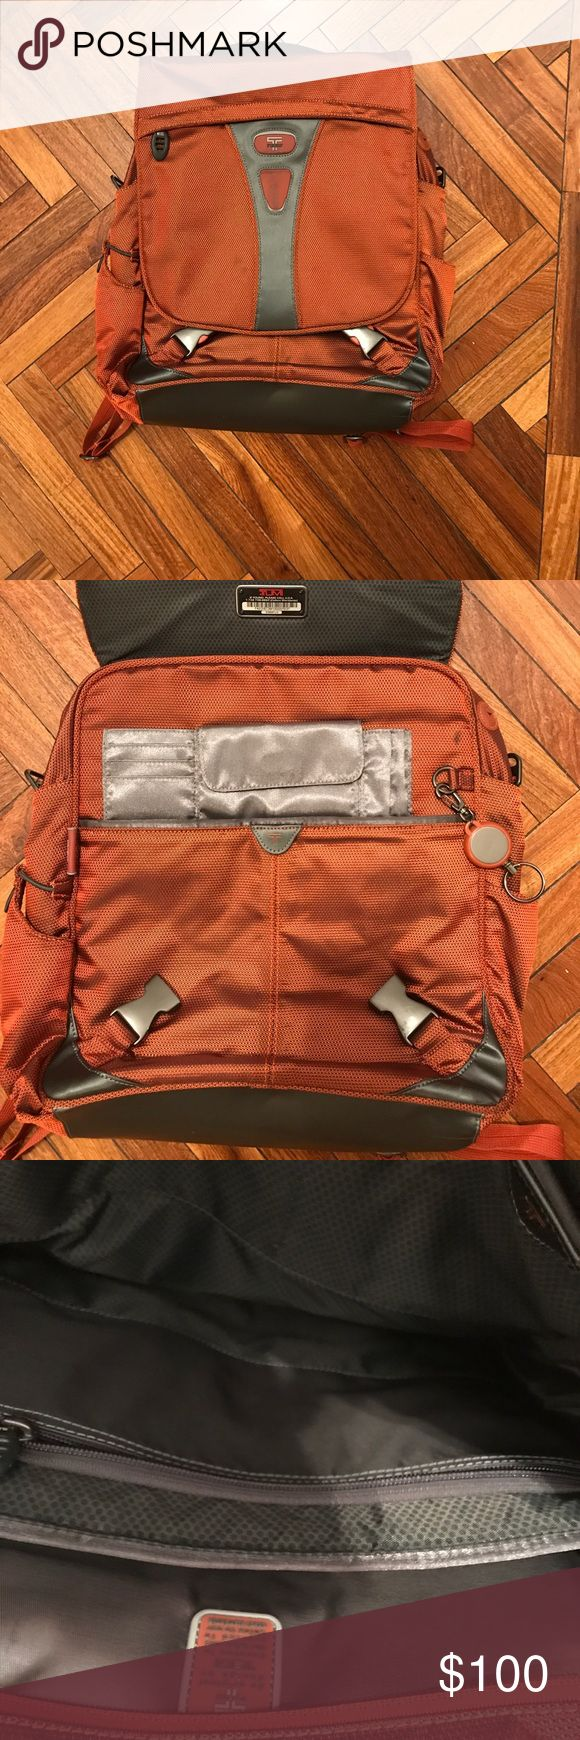 Tumi Tech dark orange laptop  back pack Tumi Tech dark orange computer back pack. Flap has a zip pocket. 2 compartments inside one side has a zipper pocket as well as 2 additional pockets. When u open the flap you have a Velcro pocket for change as well as slots for credit cards. Adjustable straps.  *** missing shoulder strap*** otherwise in very good condition. Tumi Bags Laptop Bags